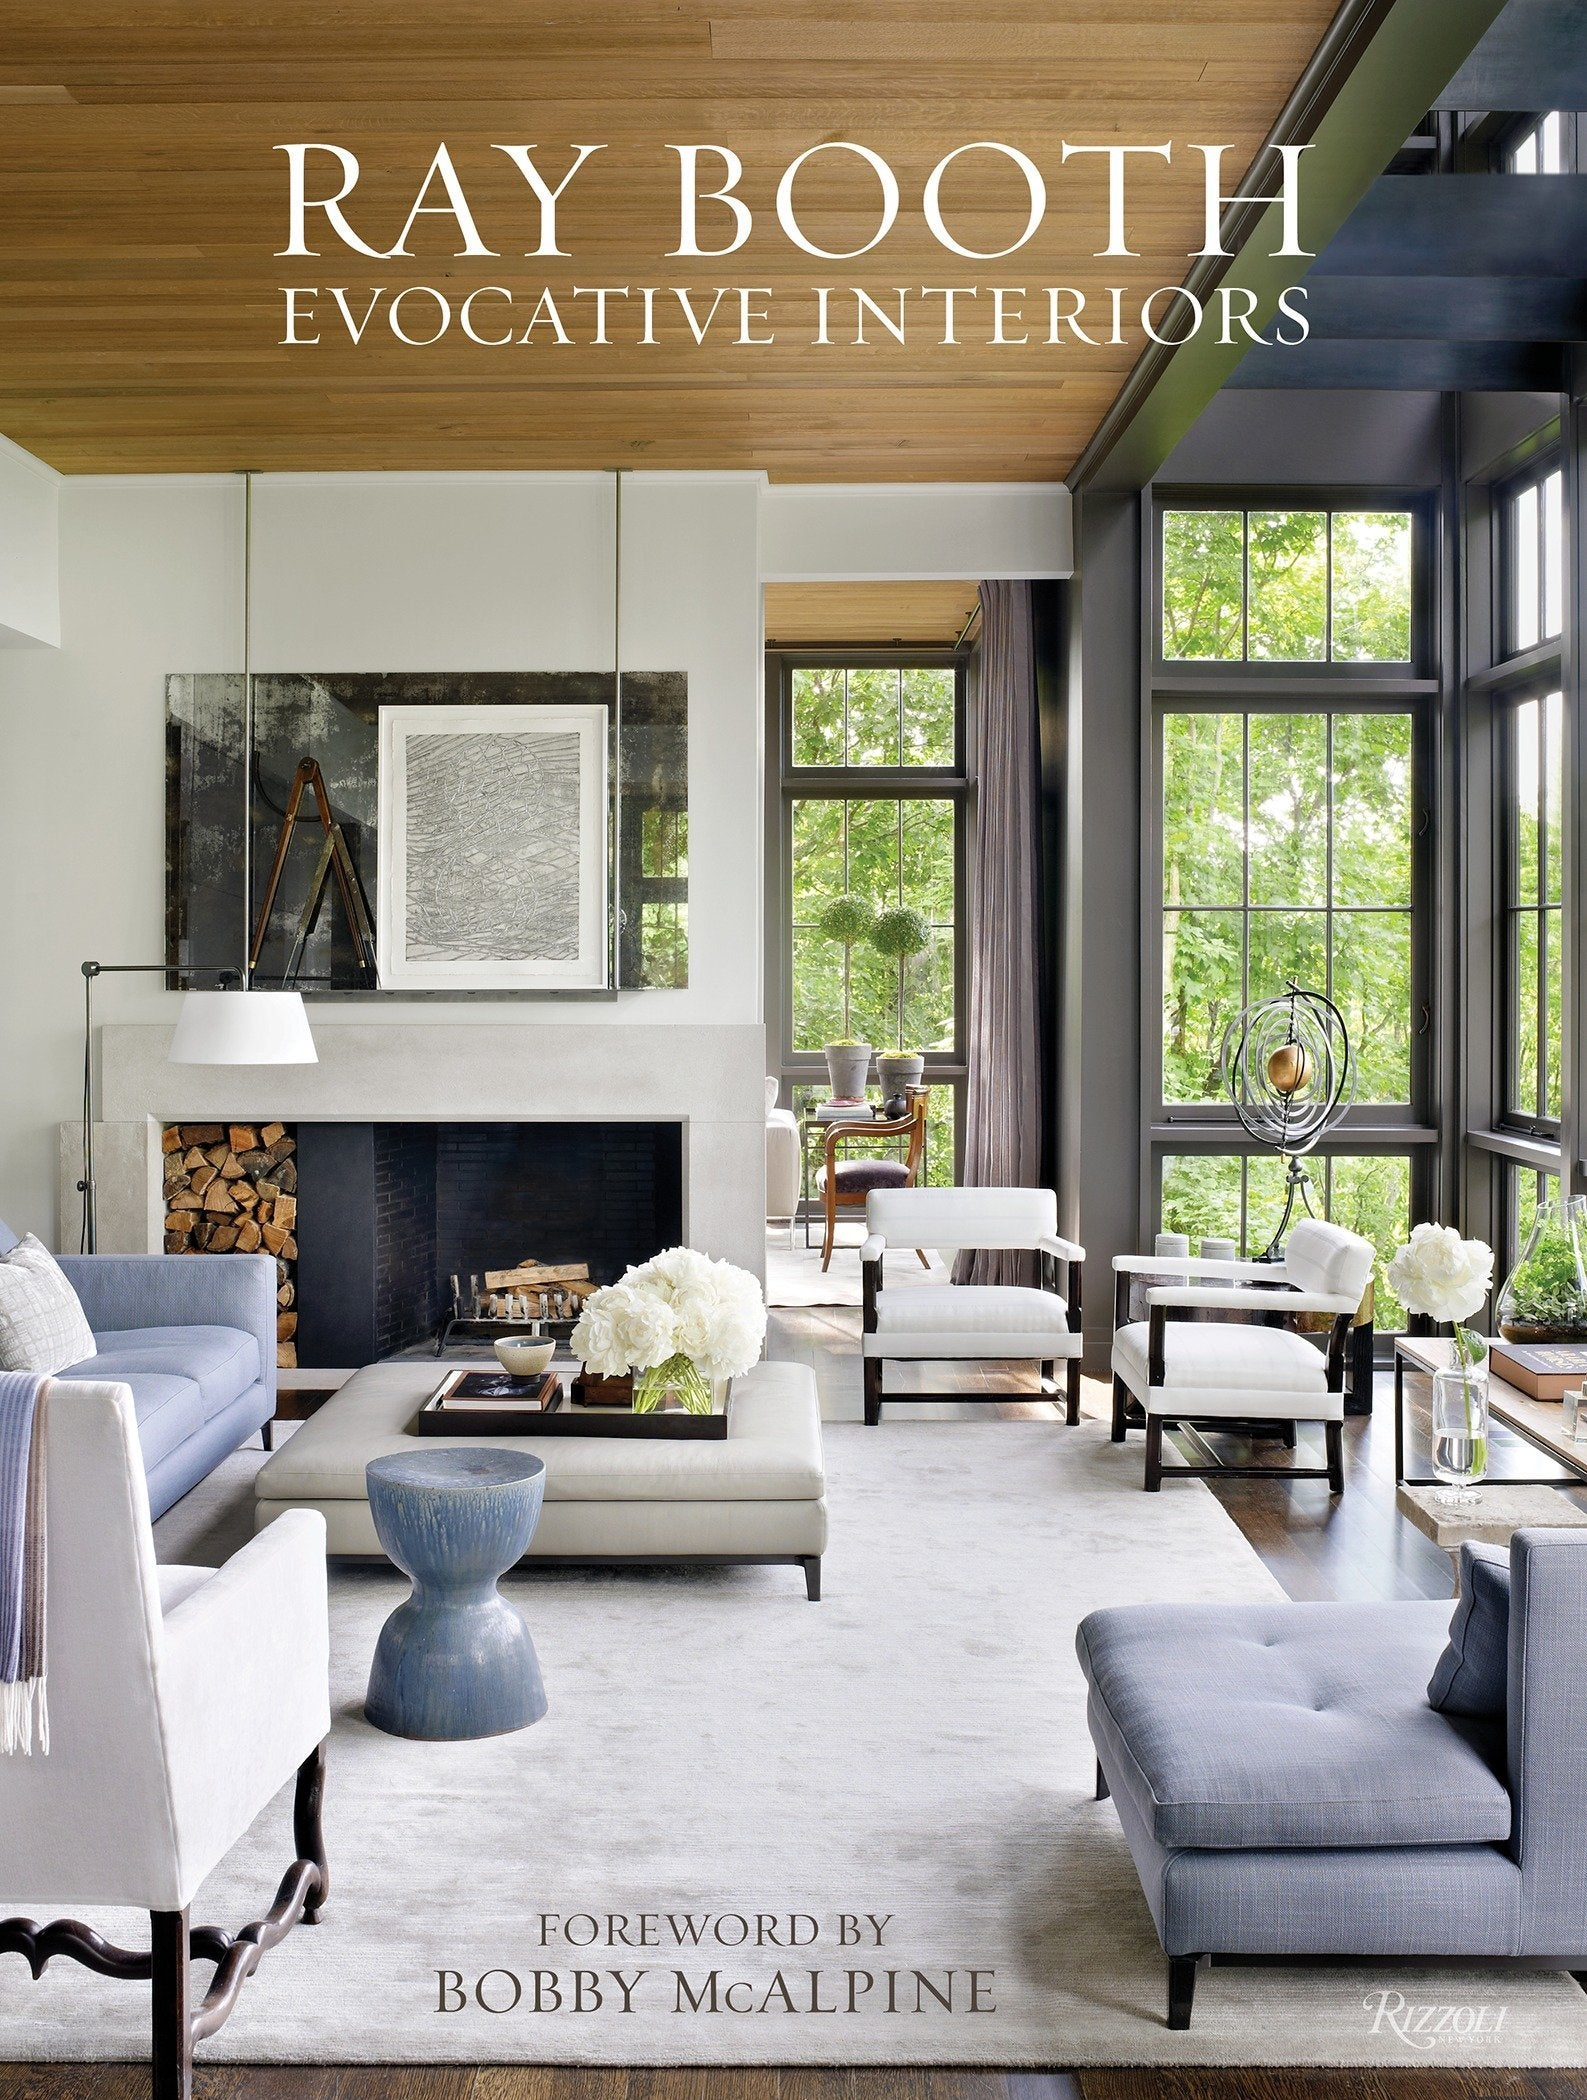 Book - Ray Booth Evocative Interiors